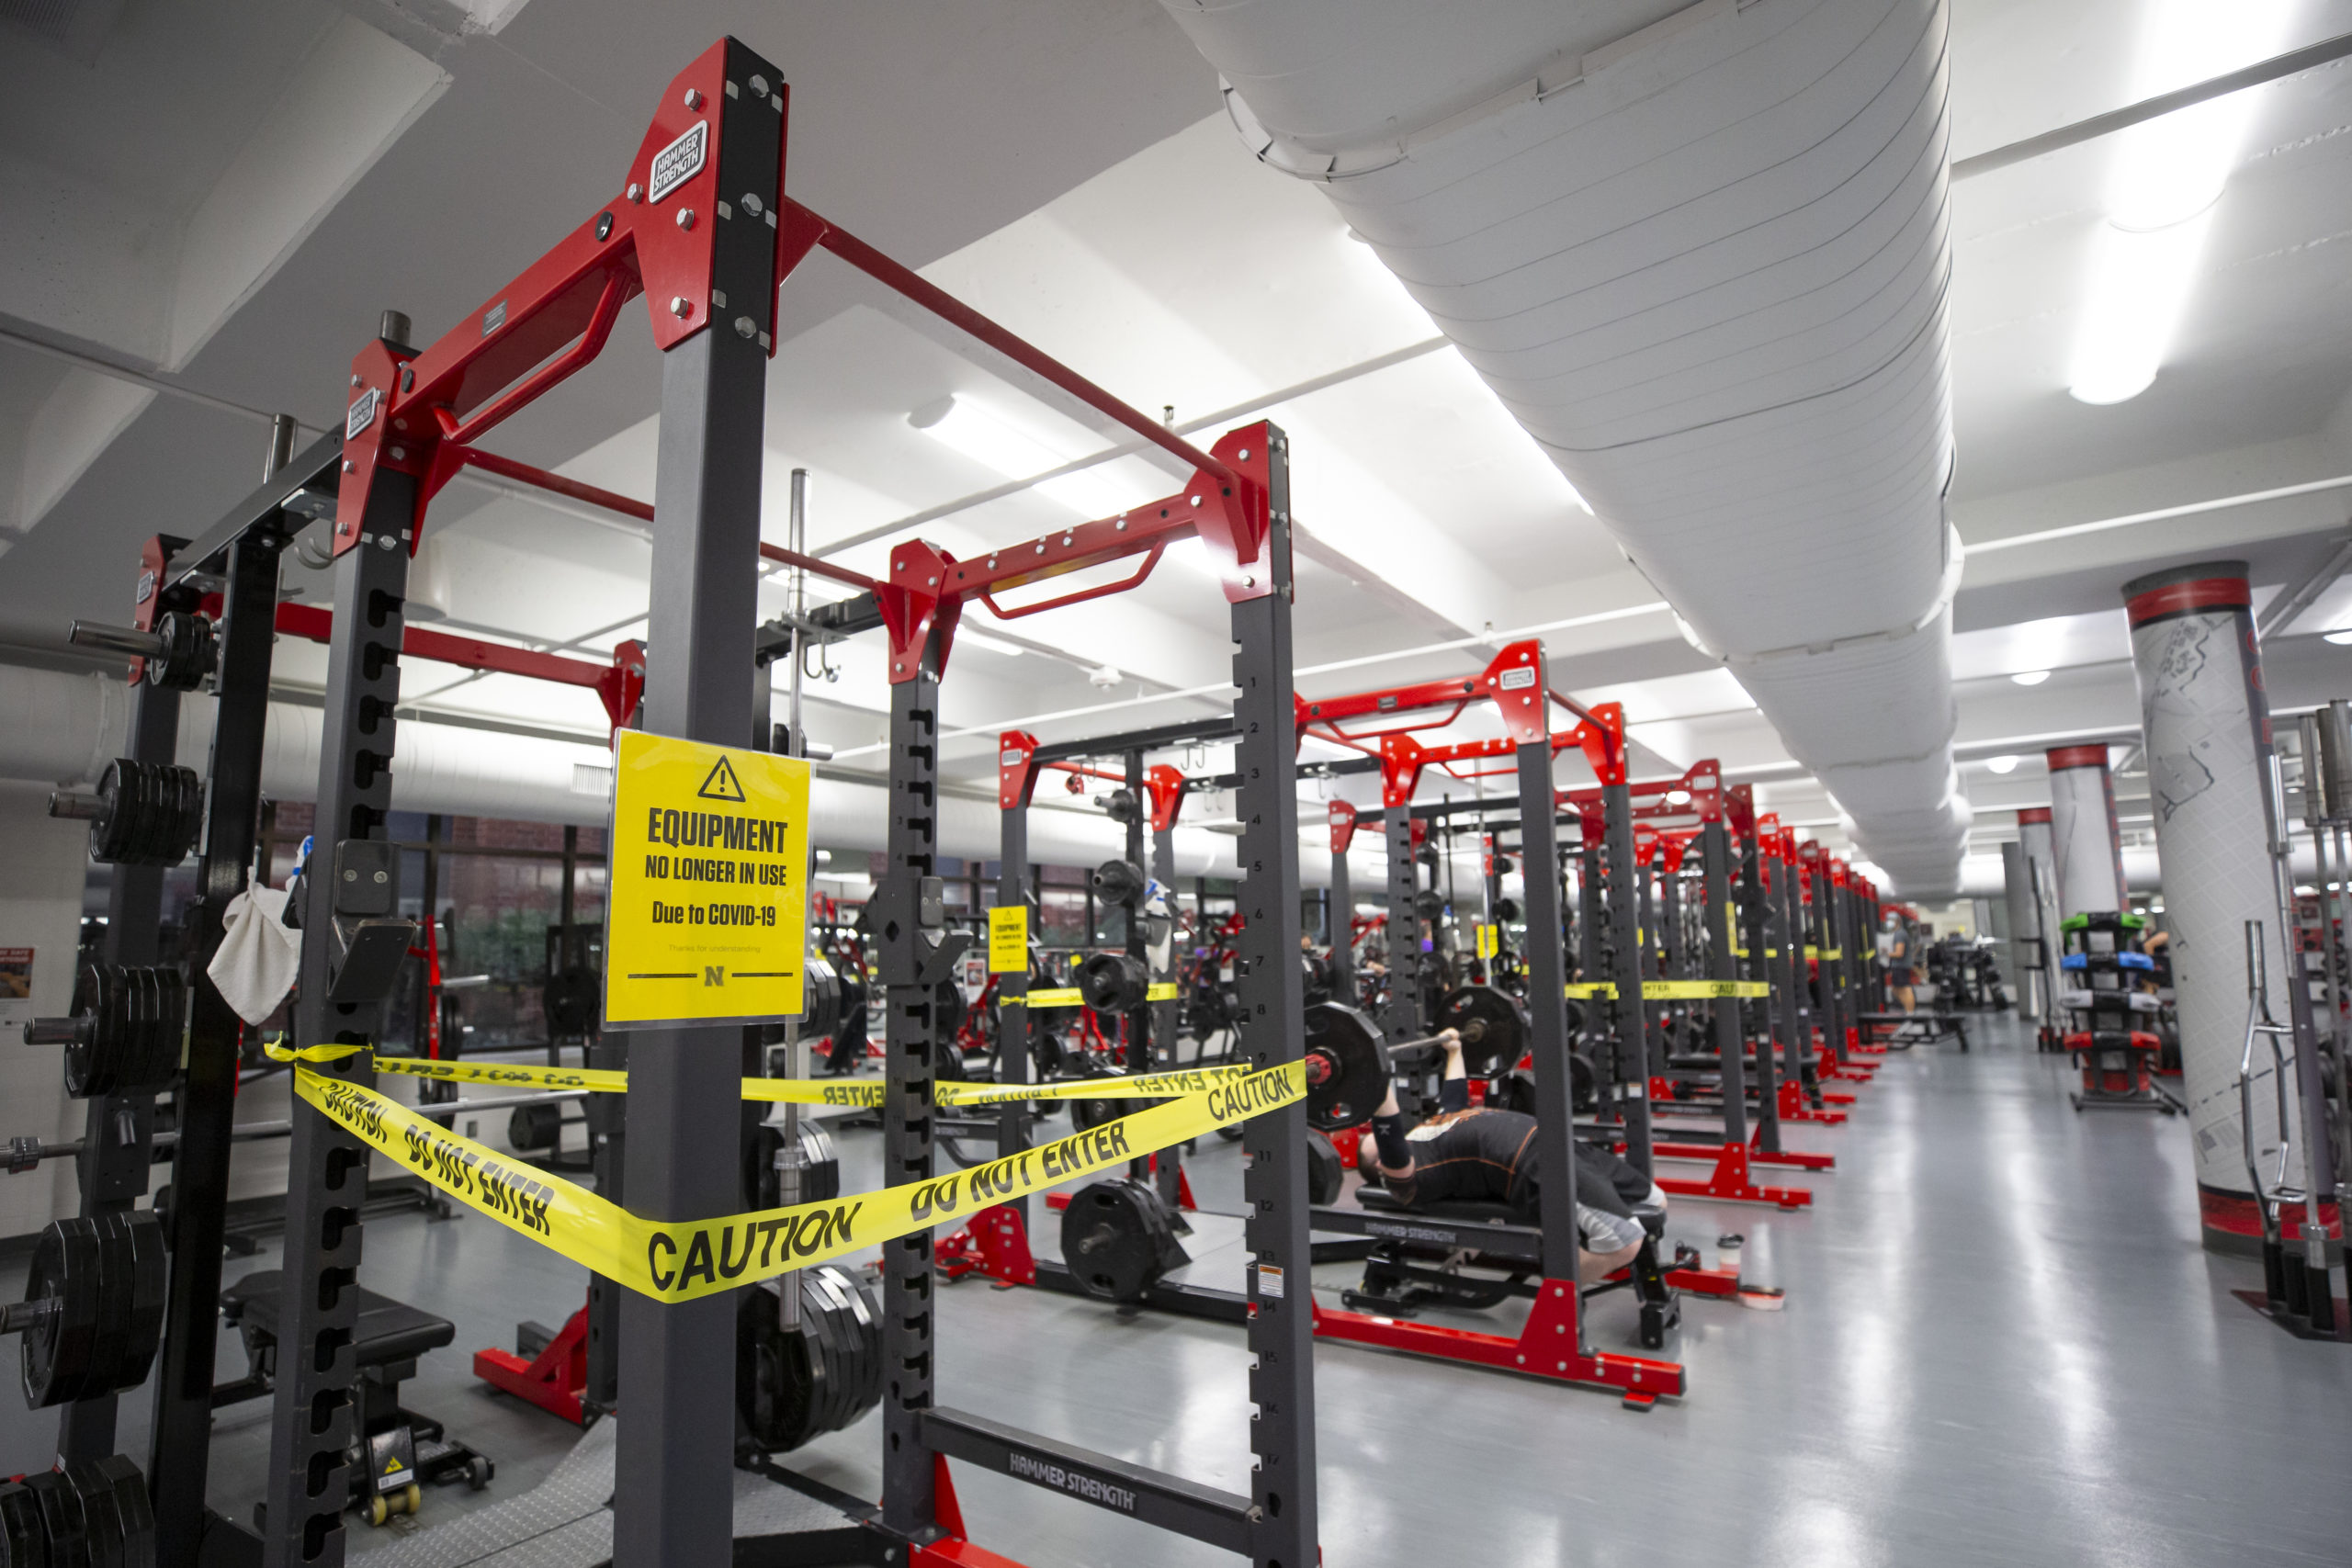 The Strength Training and Conditioning Room of the Campus Recreation Center at the University of Nebraska-Lincoln on Sunday, Oct. 25, 2020 in Lincoln, Neb. Photo by Lydia Asplin